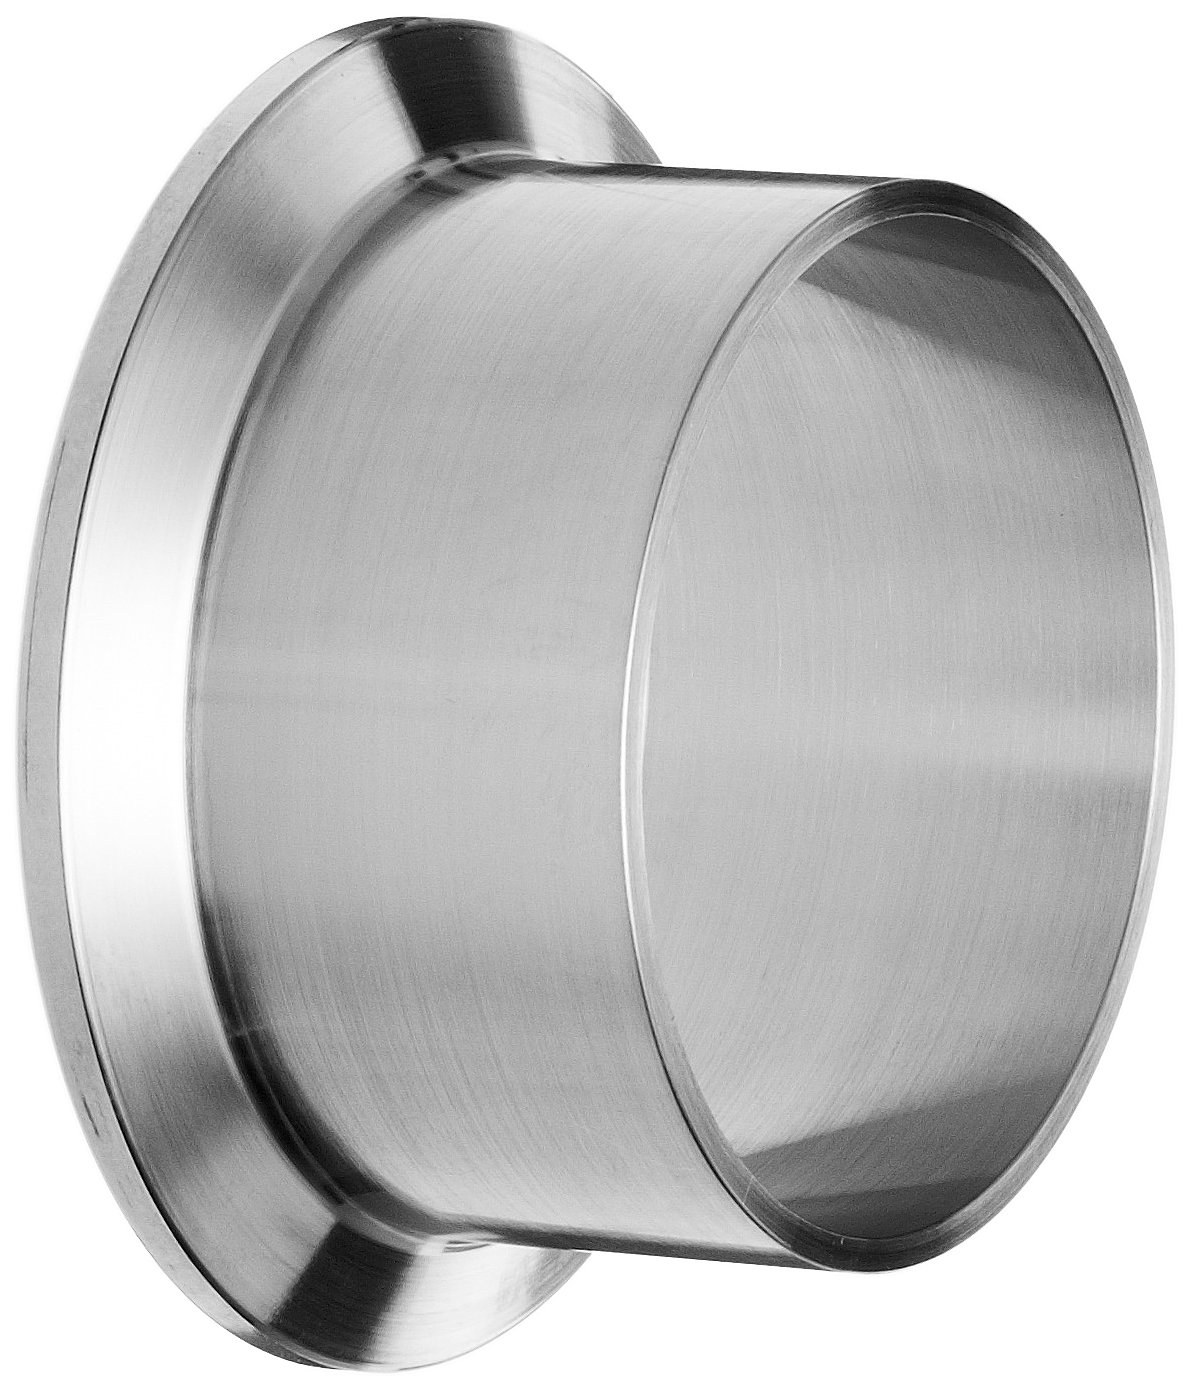 Dixon Valve & Coupling L14AM7-G200 Stainless Steel 304 Sanitary Fitting, Long Weld Clamp Ferrule, 2'' Tube Outer Diameter (Pack of 10)